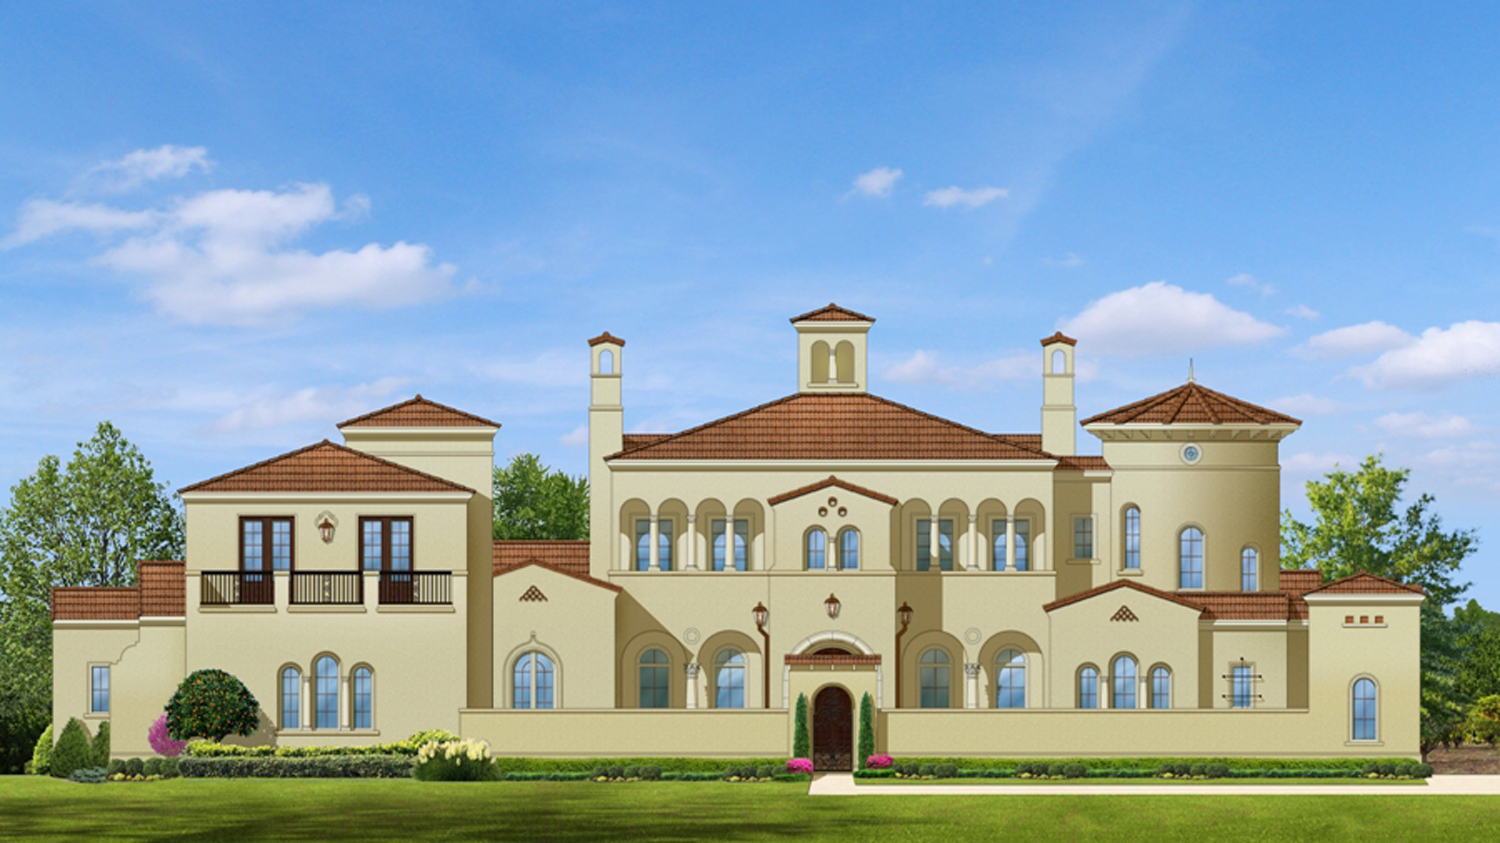 Palatial estate home plan 82011ka architectural for Palatial home designs